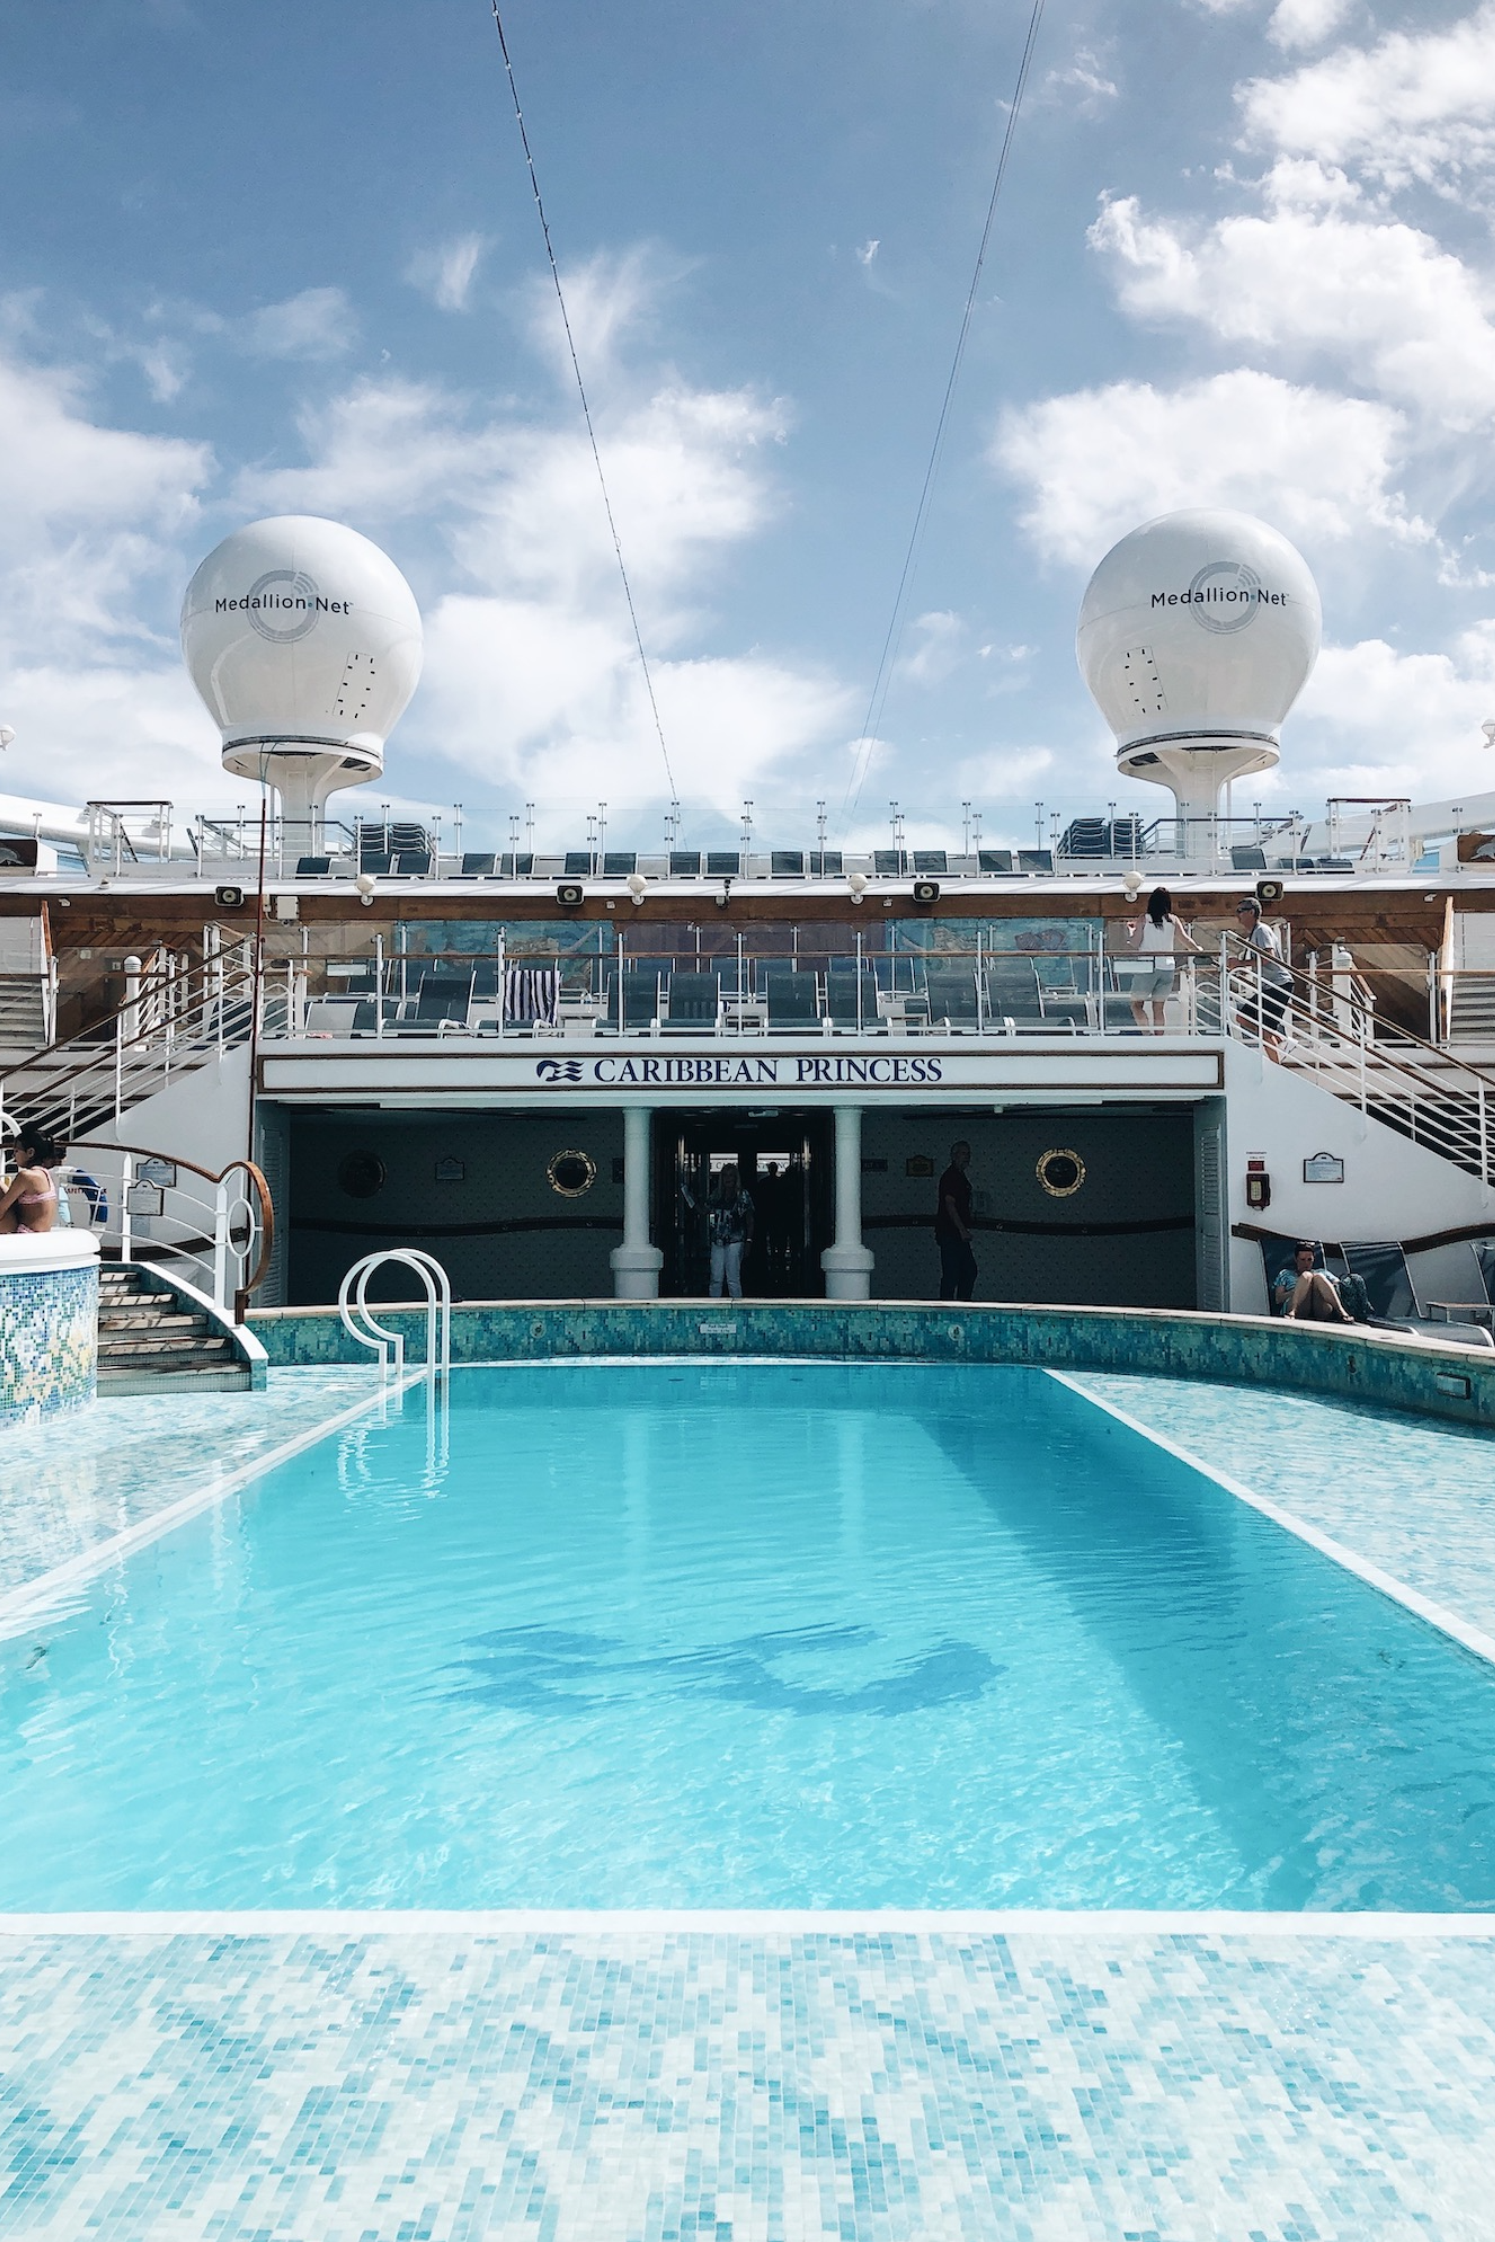 Princess Cruises, OceanMedallion, Caribbean cruise, travel, travel blog, style blogger, summer vacation, travel tips, cruising, pool, lido deck, ship tour, Caribbean Princess